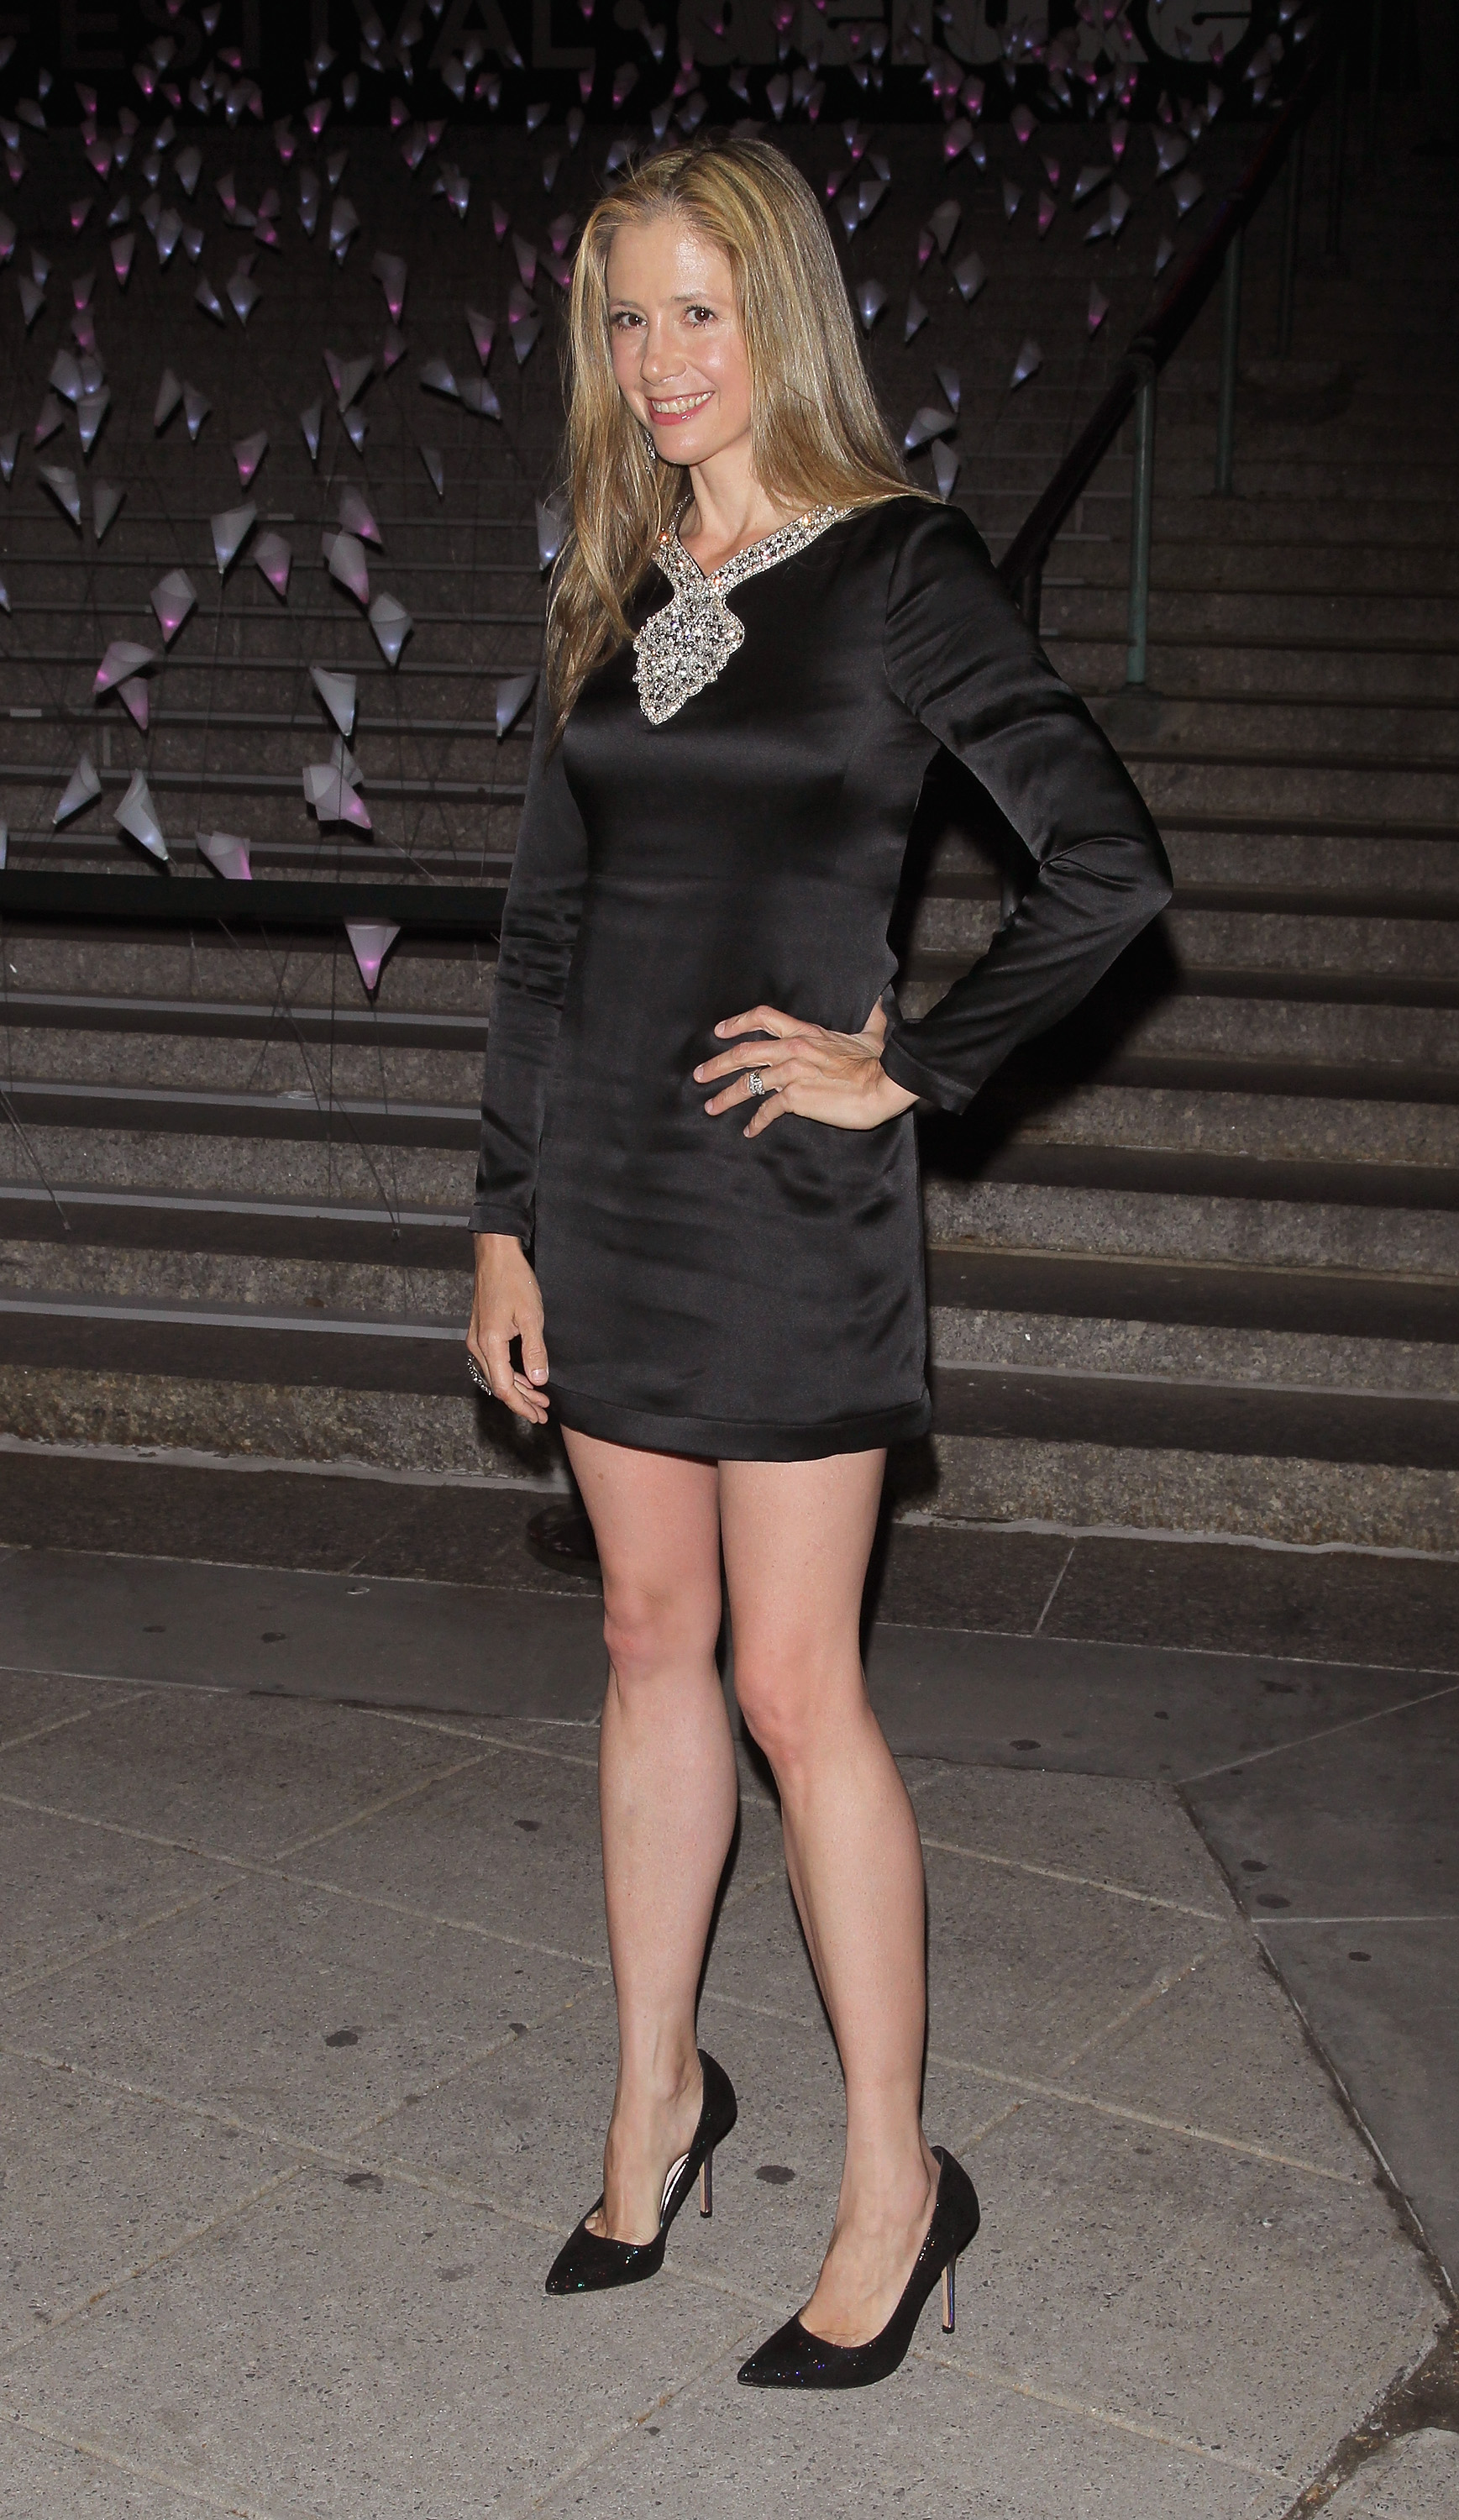 Mira Sorvino showed off her legs in a black minidress for Vanity Fair's bash.